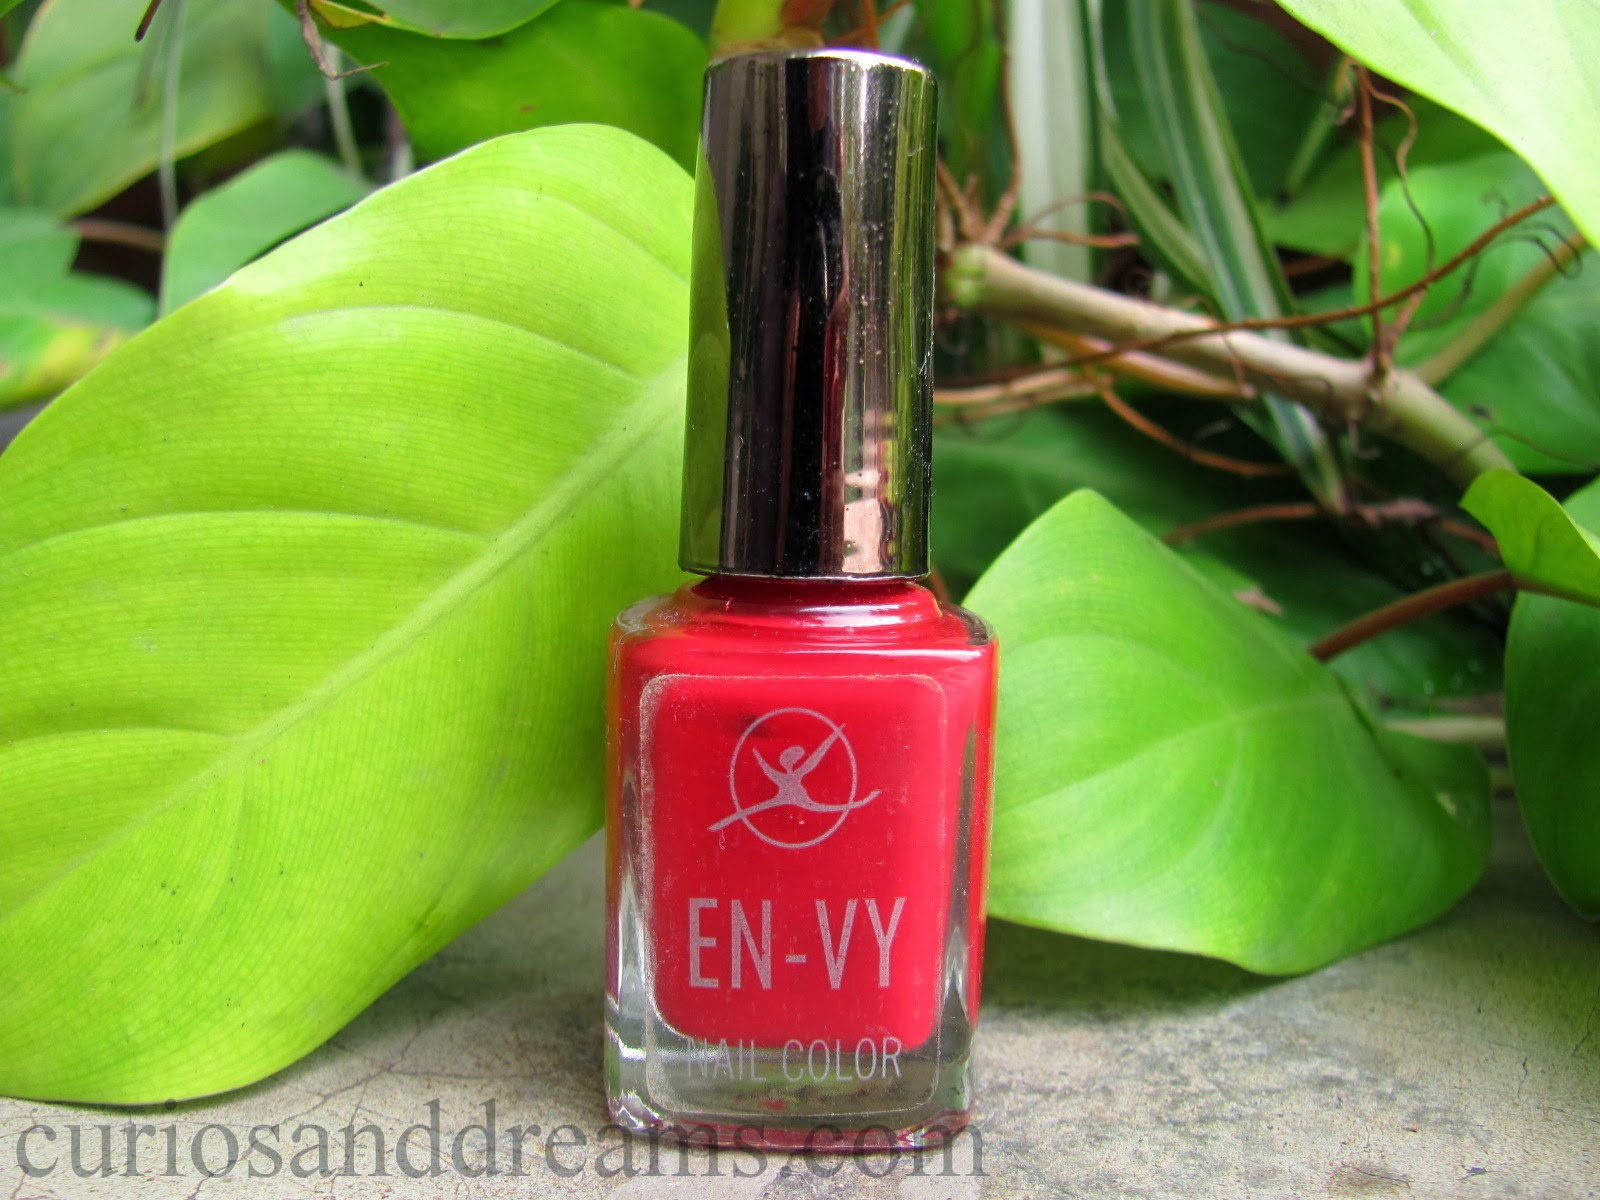 EN-VY Nail Color Ooh La La Red review, red nailpolish review